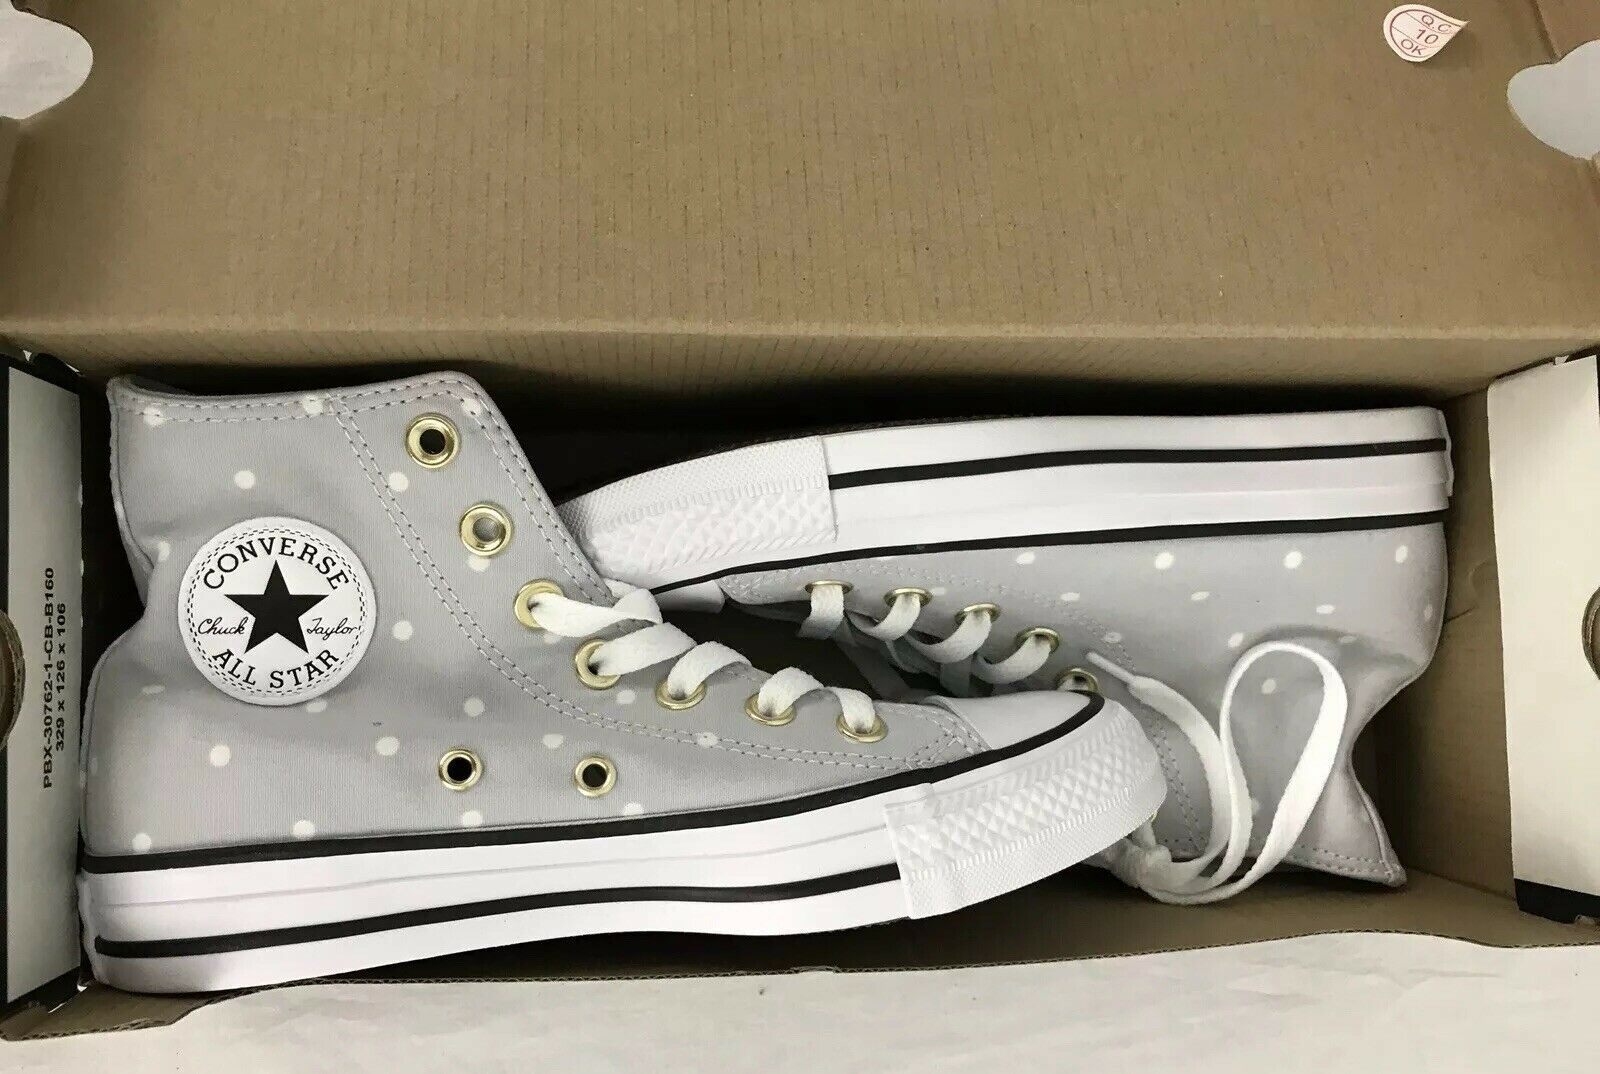 Converse donna's Chuck Taylor All Star High Top scarpe scarpe scarpe Polka Dots US Dimensione 5 New 255ead